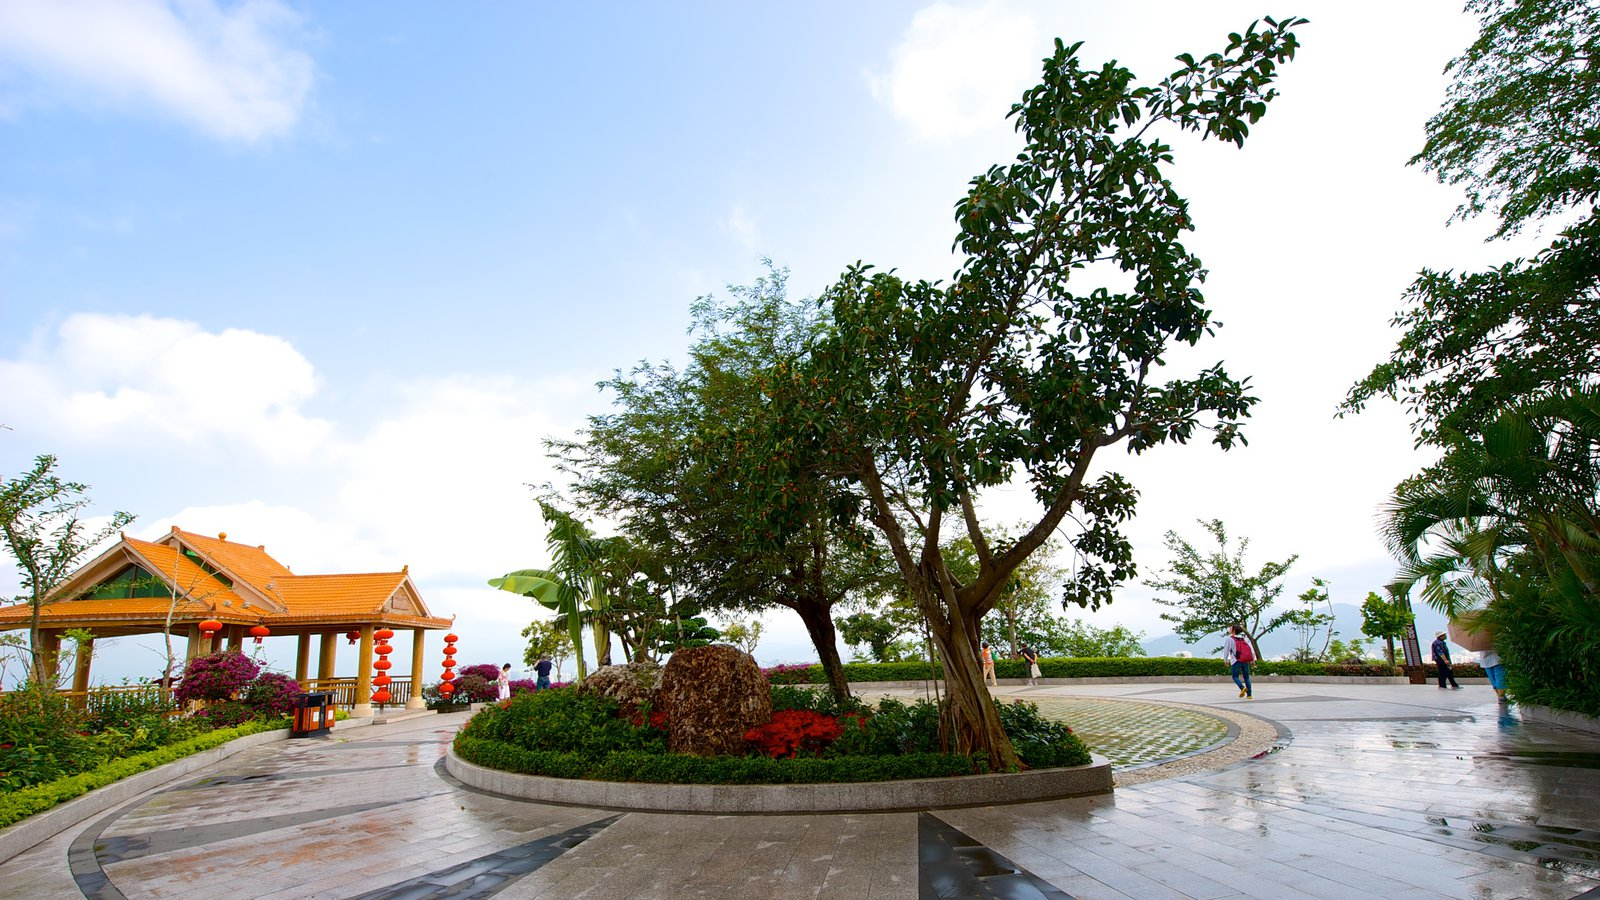 Luhuitou Park is a perfect spot to relax and recharge.